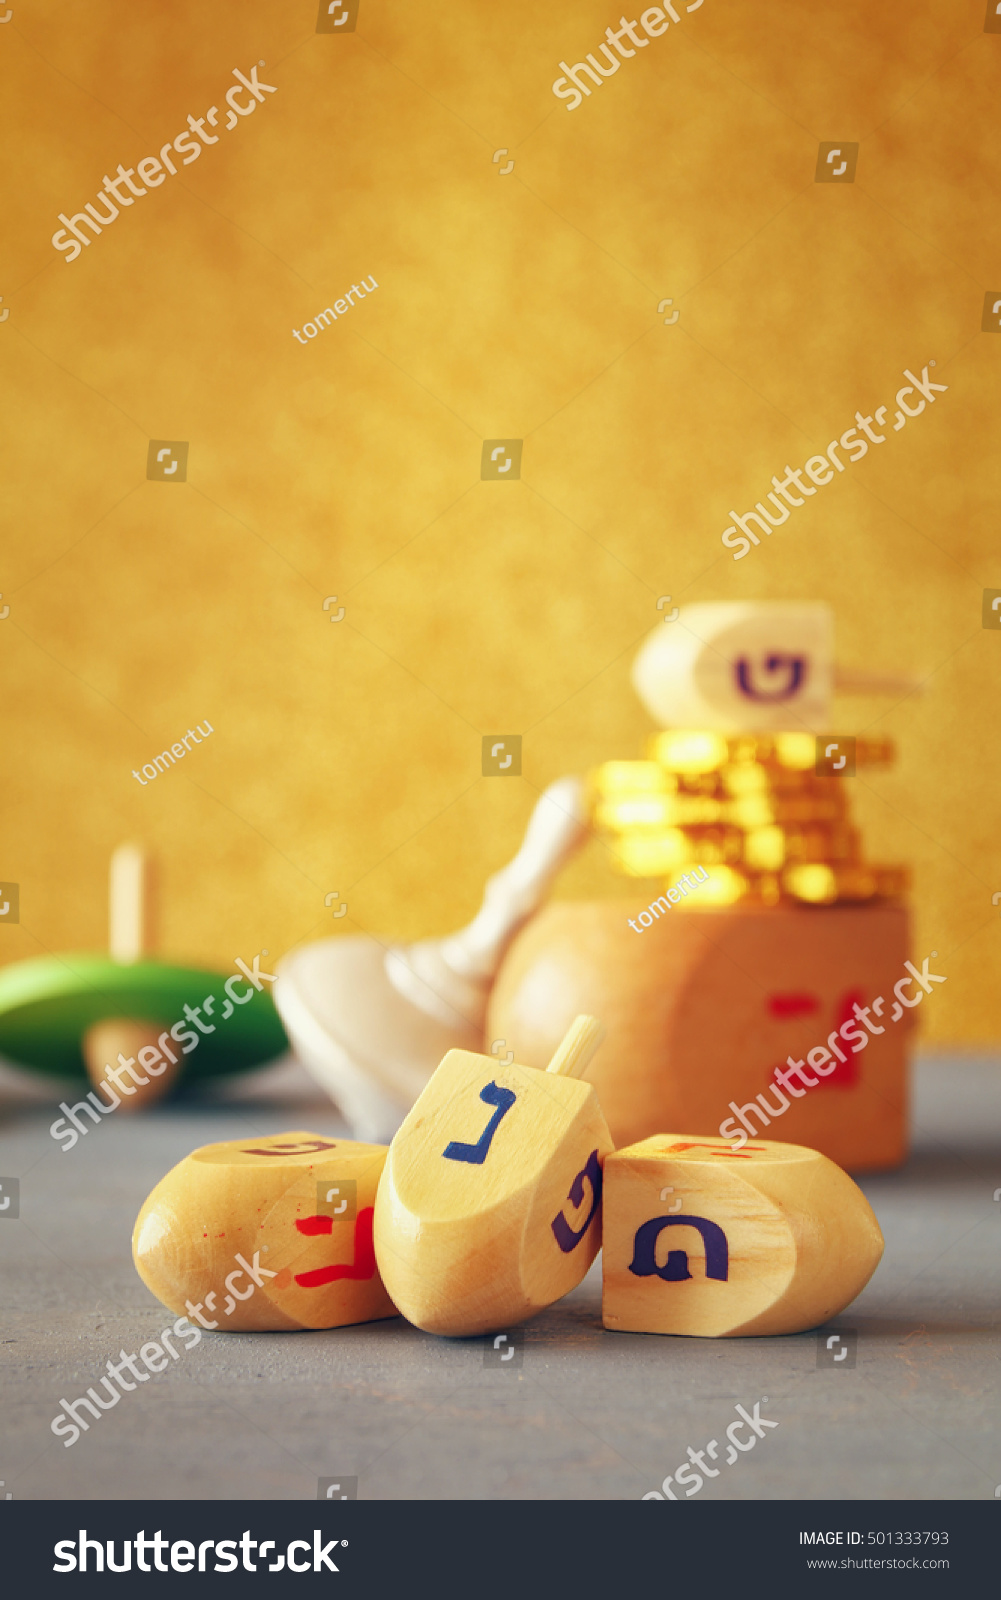 Image jewish holiday hanukkah wooden dreidels stock photo image of jewish holiday hanukkah with wooden dreidels colection spinning top and chocolate coins biocorpaavc